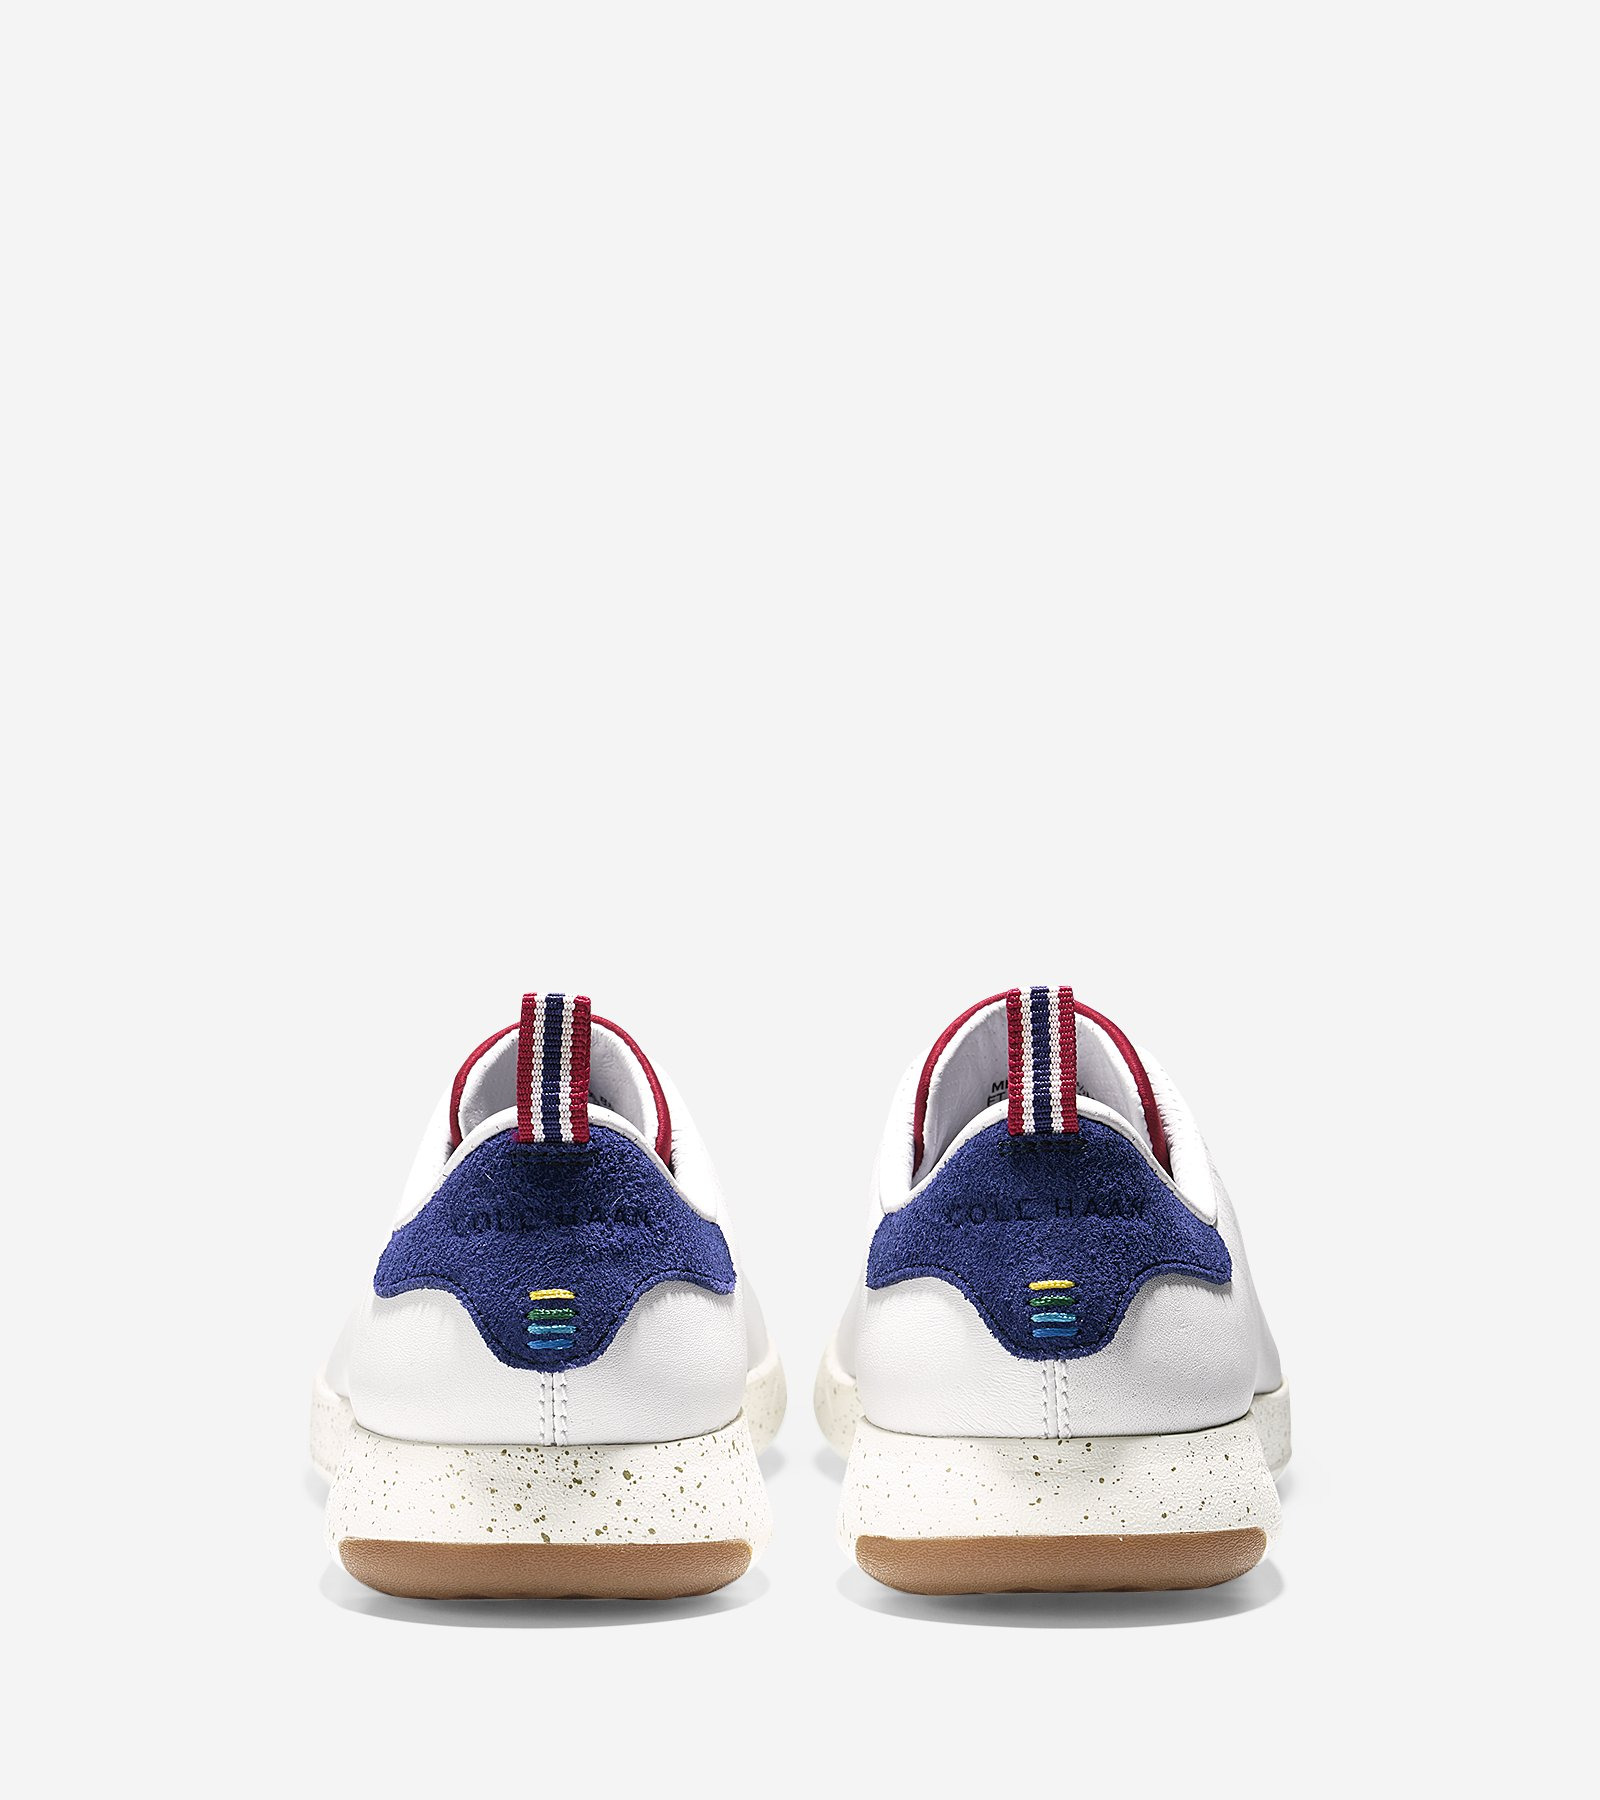 Cole Haan x JackThreads_GrandPrø_Back_Photo Credit Cole Haan.jpg